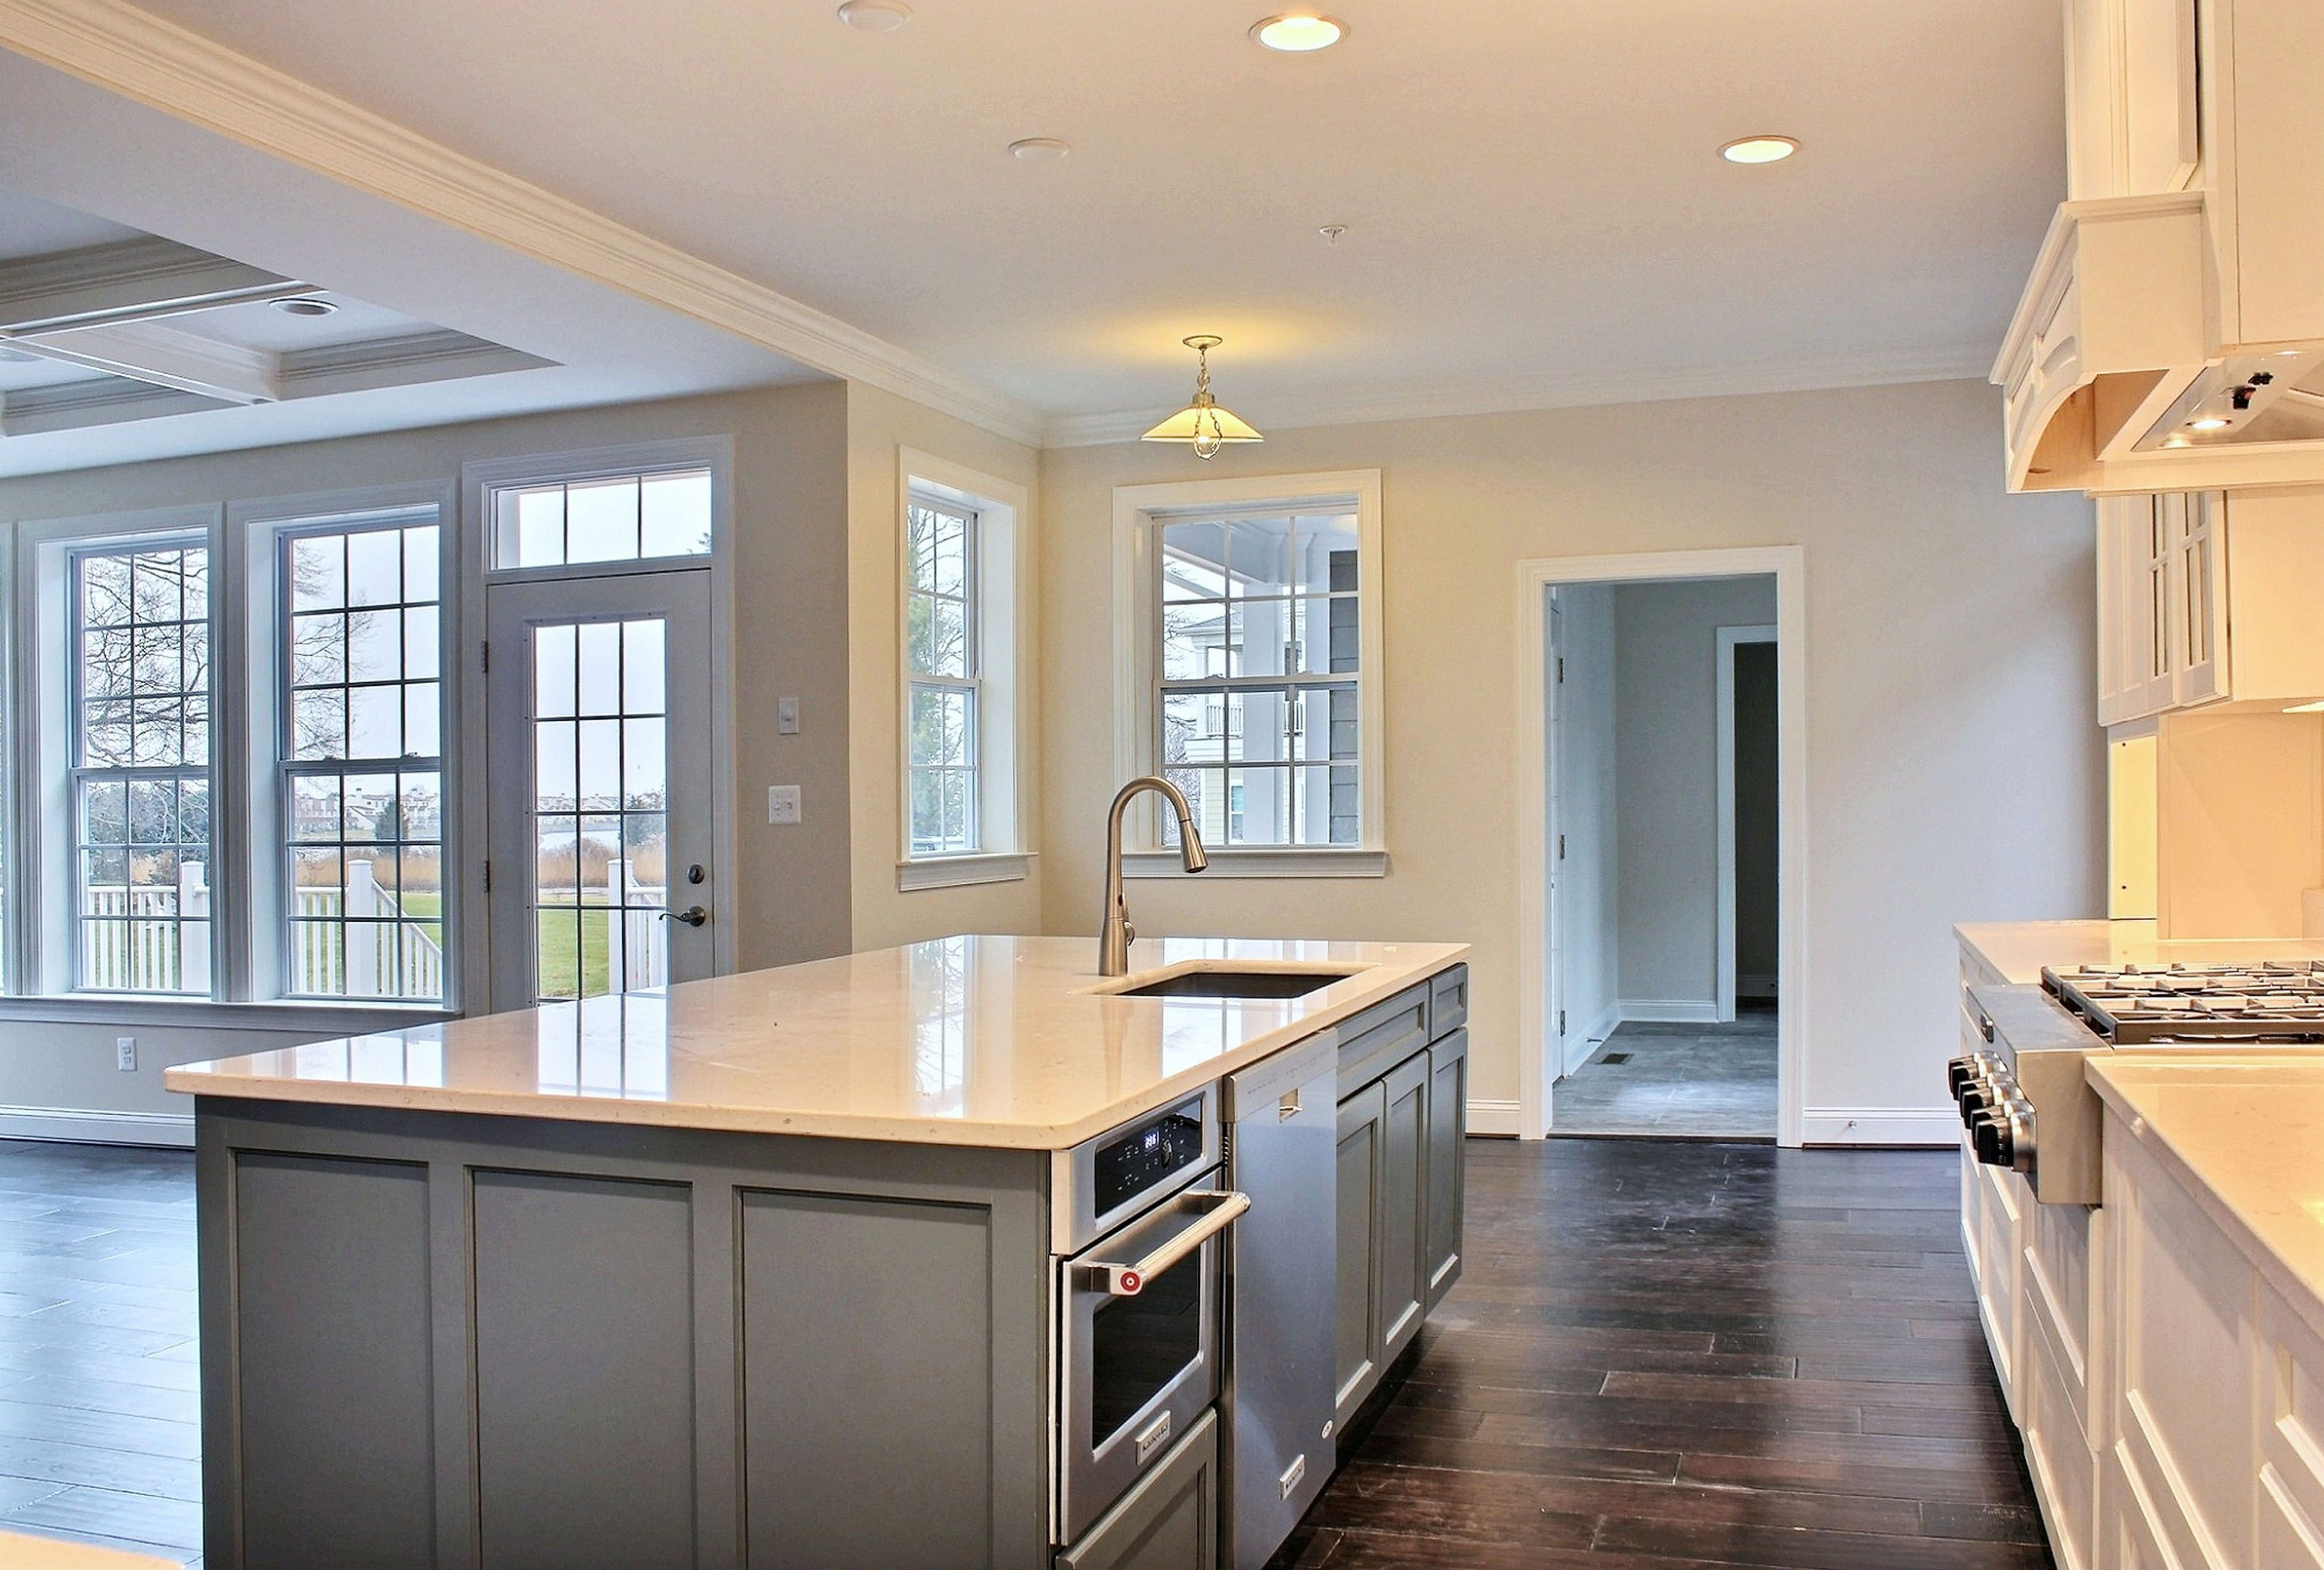 Kitchen featured in the East Port Legacy By Covell Communities in Eastern Shore, MD